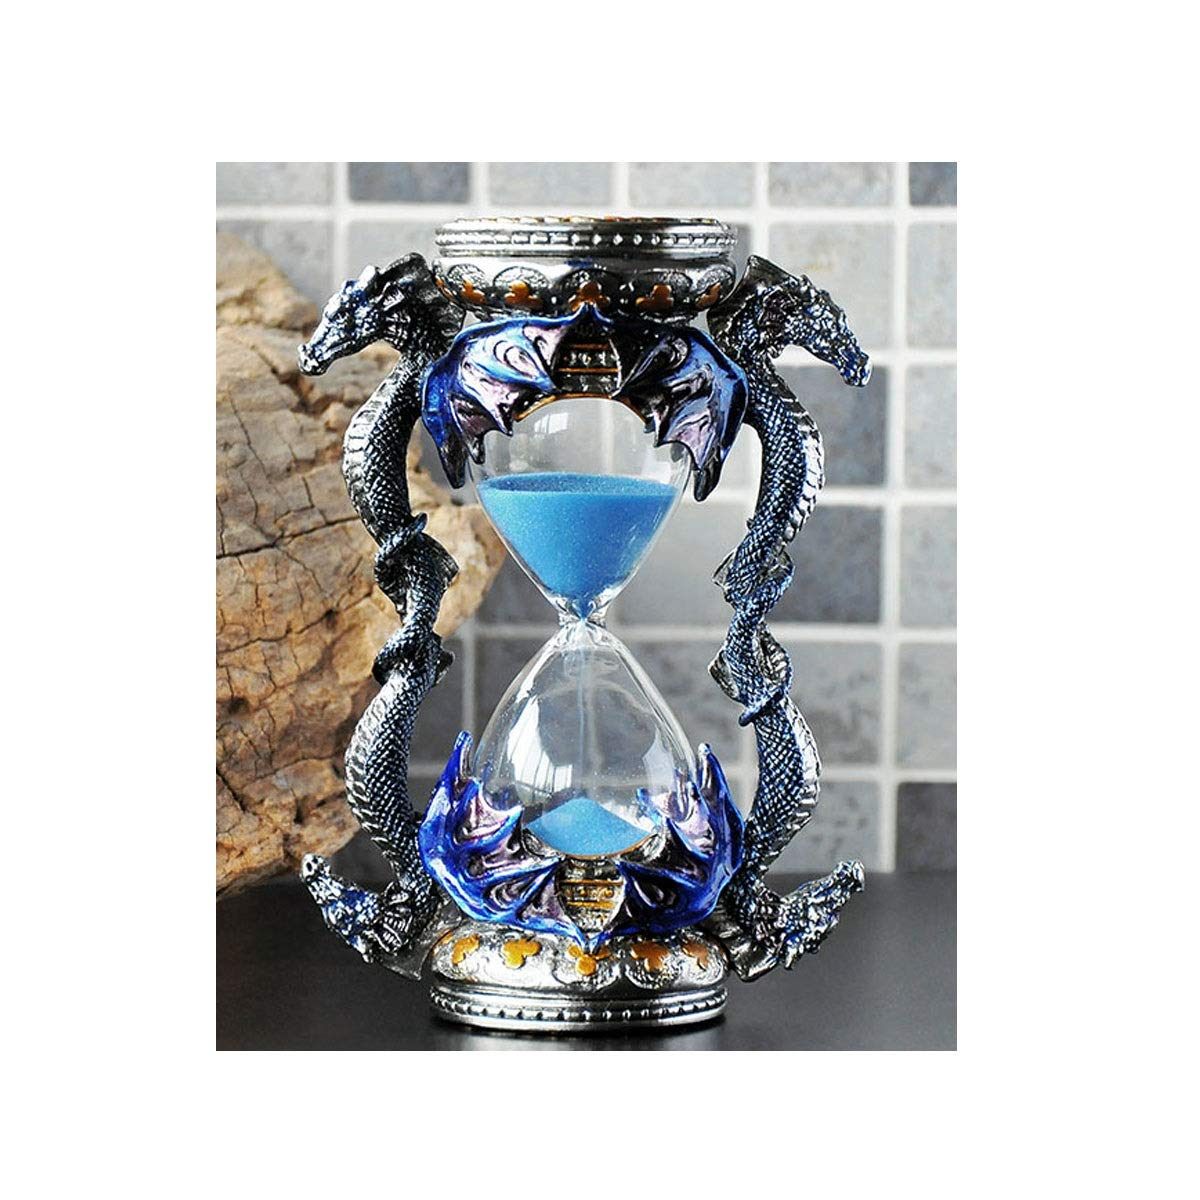 Jiansheng01 Hourglass, Metal Bat Style Creative Style, Hand-Made Fine, with A Packaging Box, Can Be Used As A Gift (Blue, 10.515cm/4.26 Inches) Comfortable (Color : Blue)